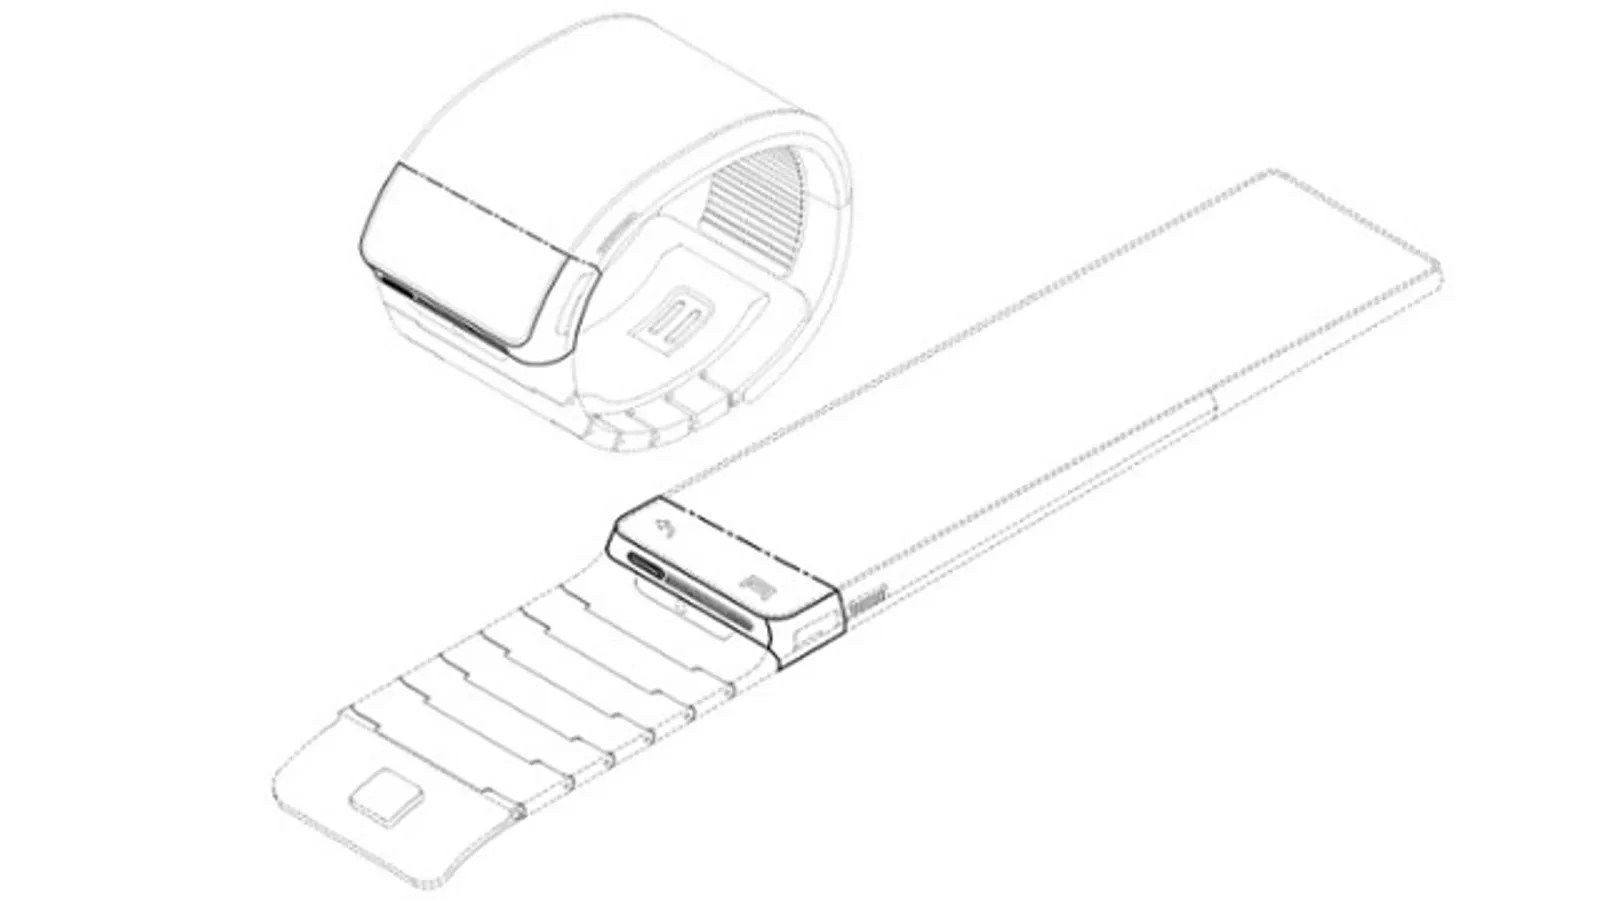 Rumour: Samsung Smart Watch Has Camera, Speakers, NFC